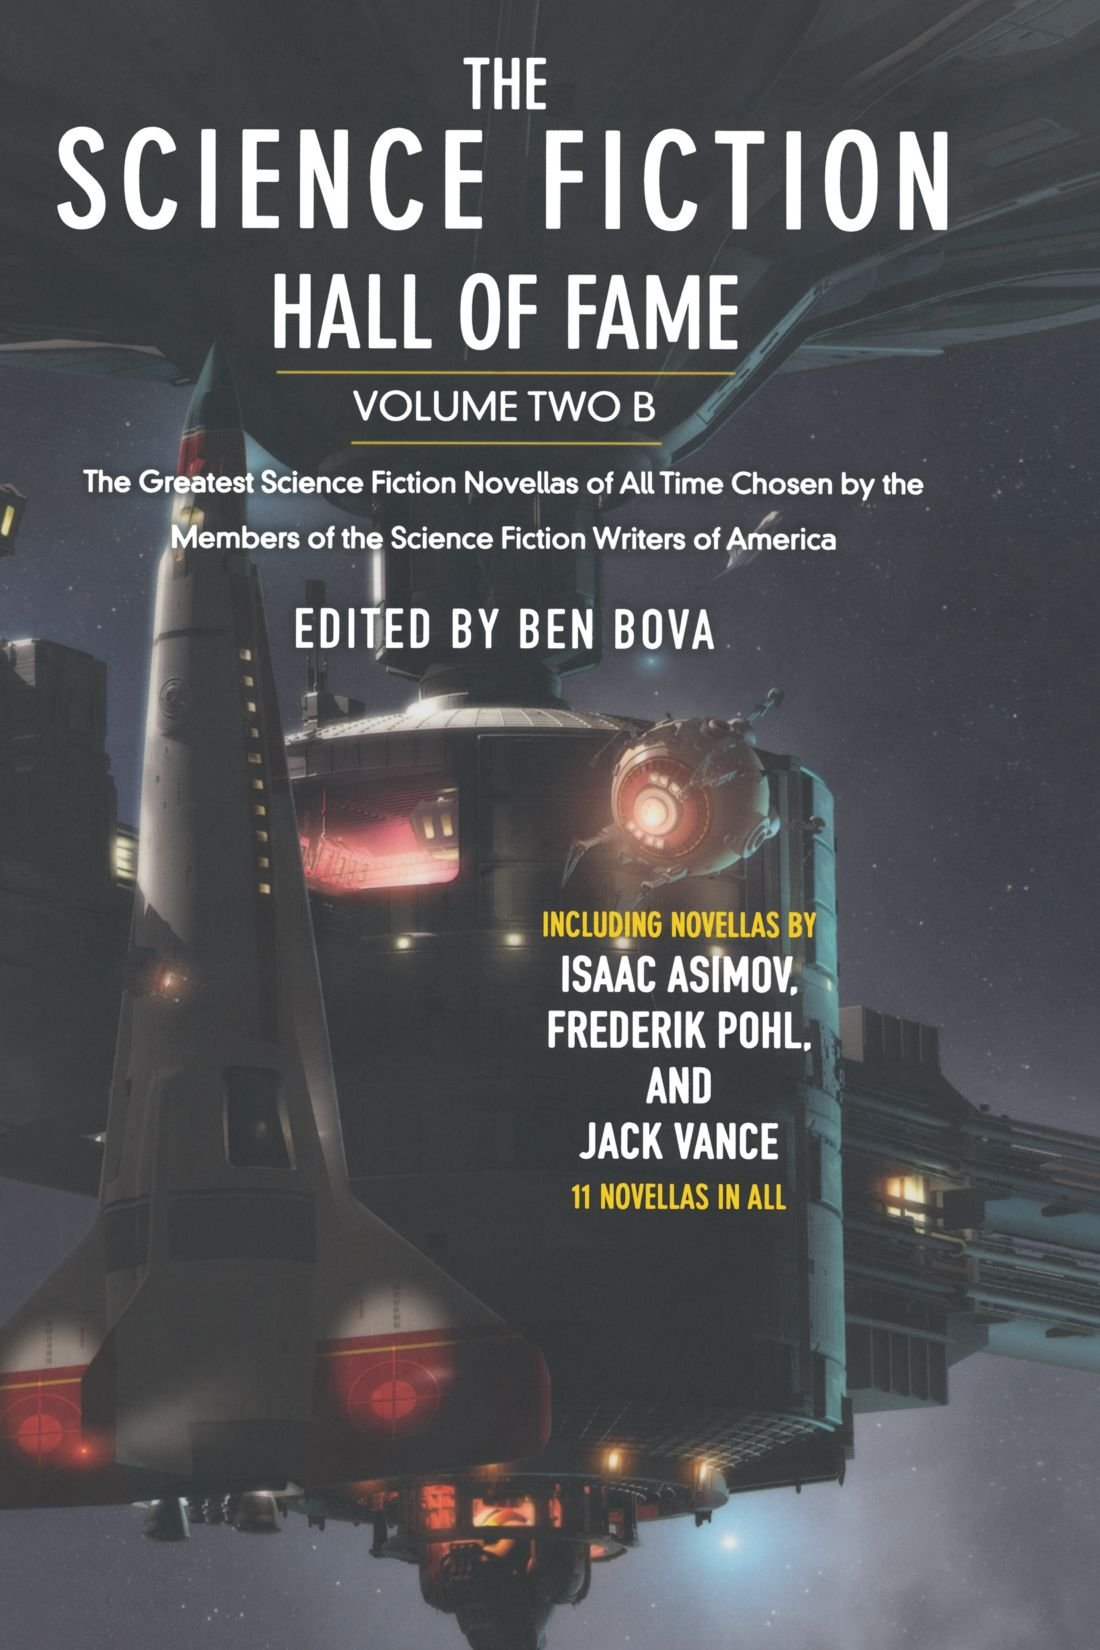 The Science Fiction Hall of Fame, Volume Two B: The Greatest